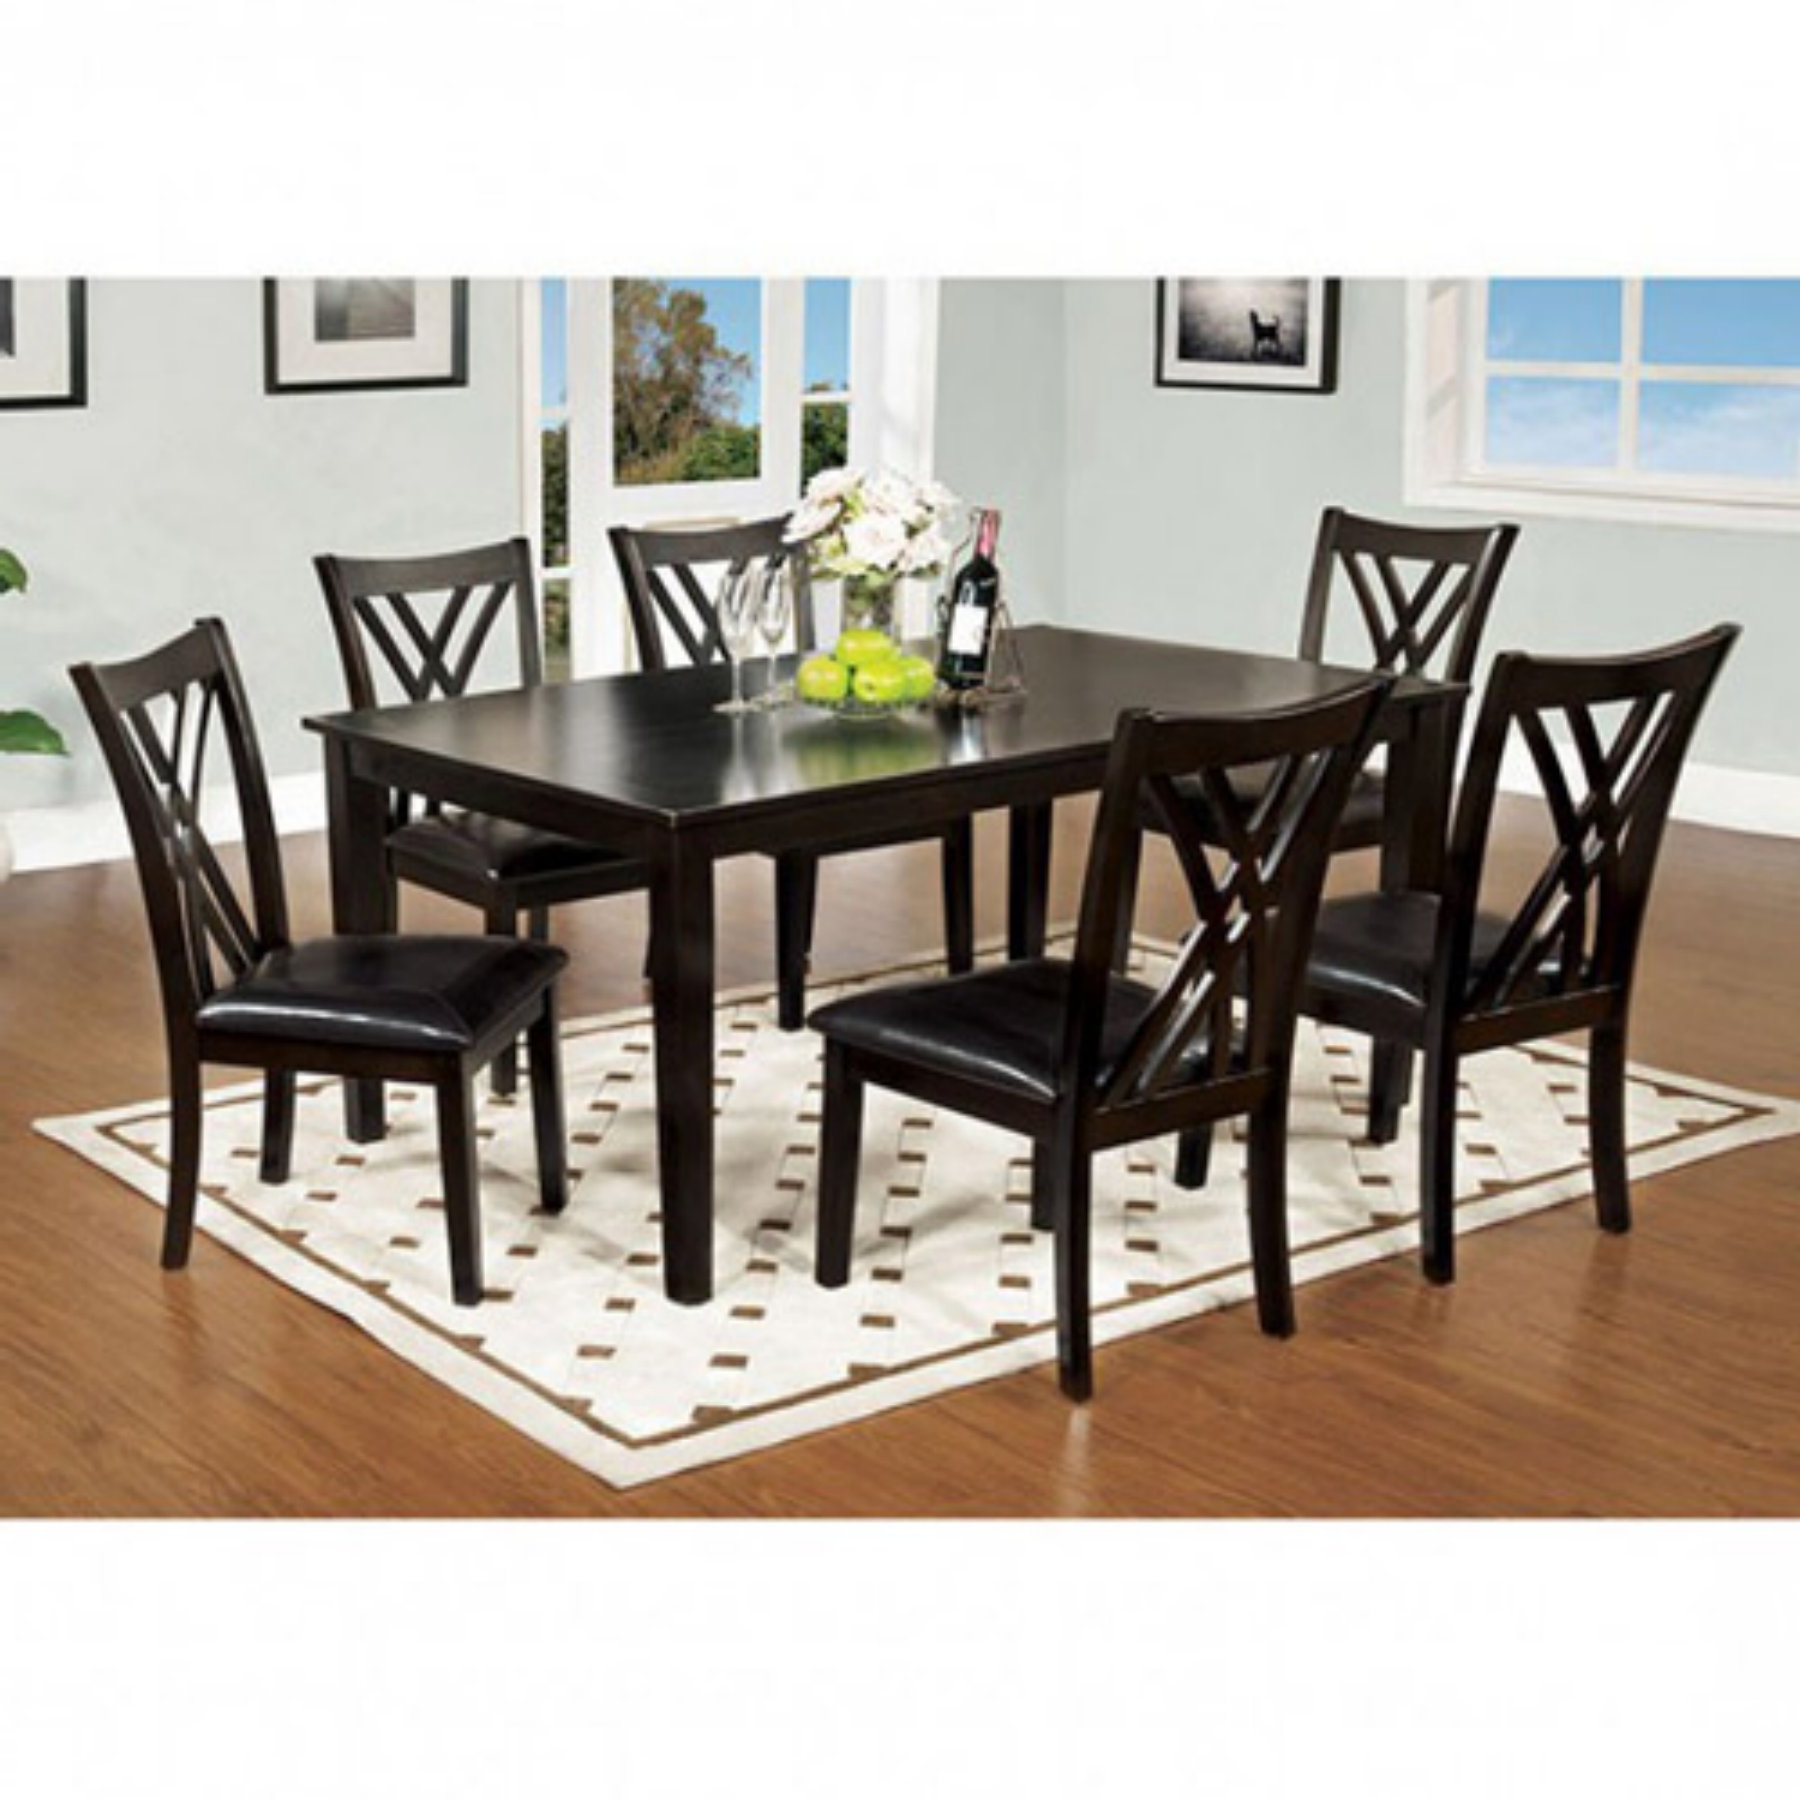 Well Liked Craftsman 7 Piece Rectangular Extension Dining Sets With Arm & Uph Side Chairs Throughout Benzara Springhill Enticing 7 Piece Rectangular Dining Table Set In (View 4 of 25)